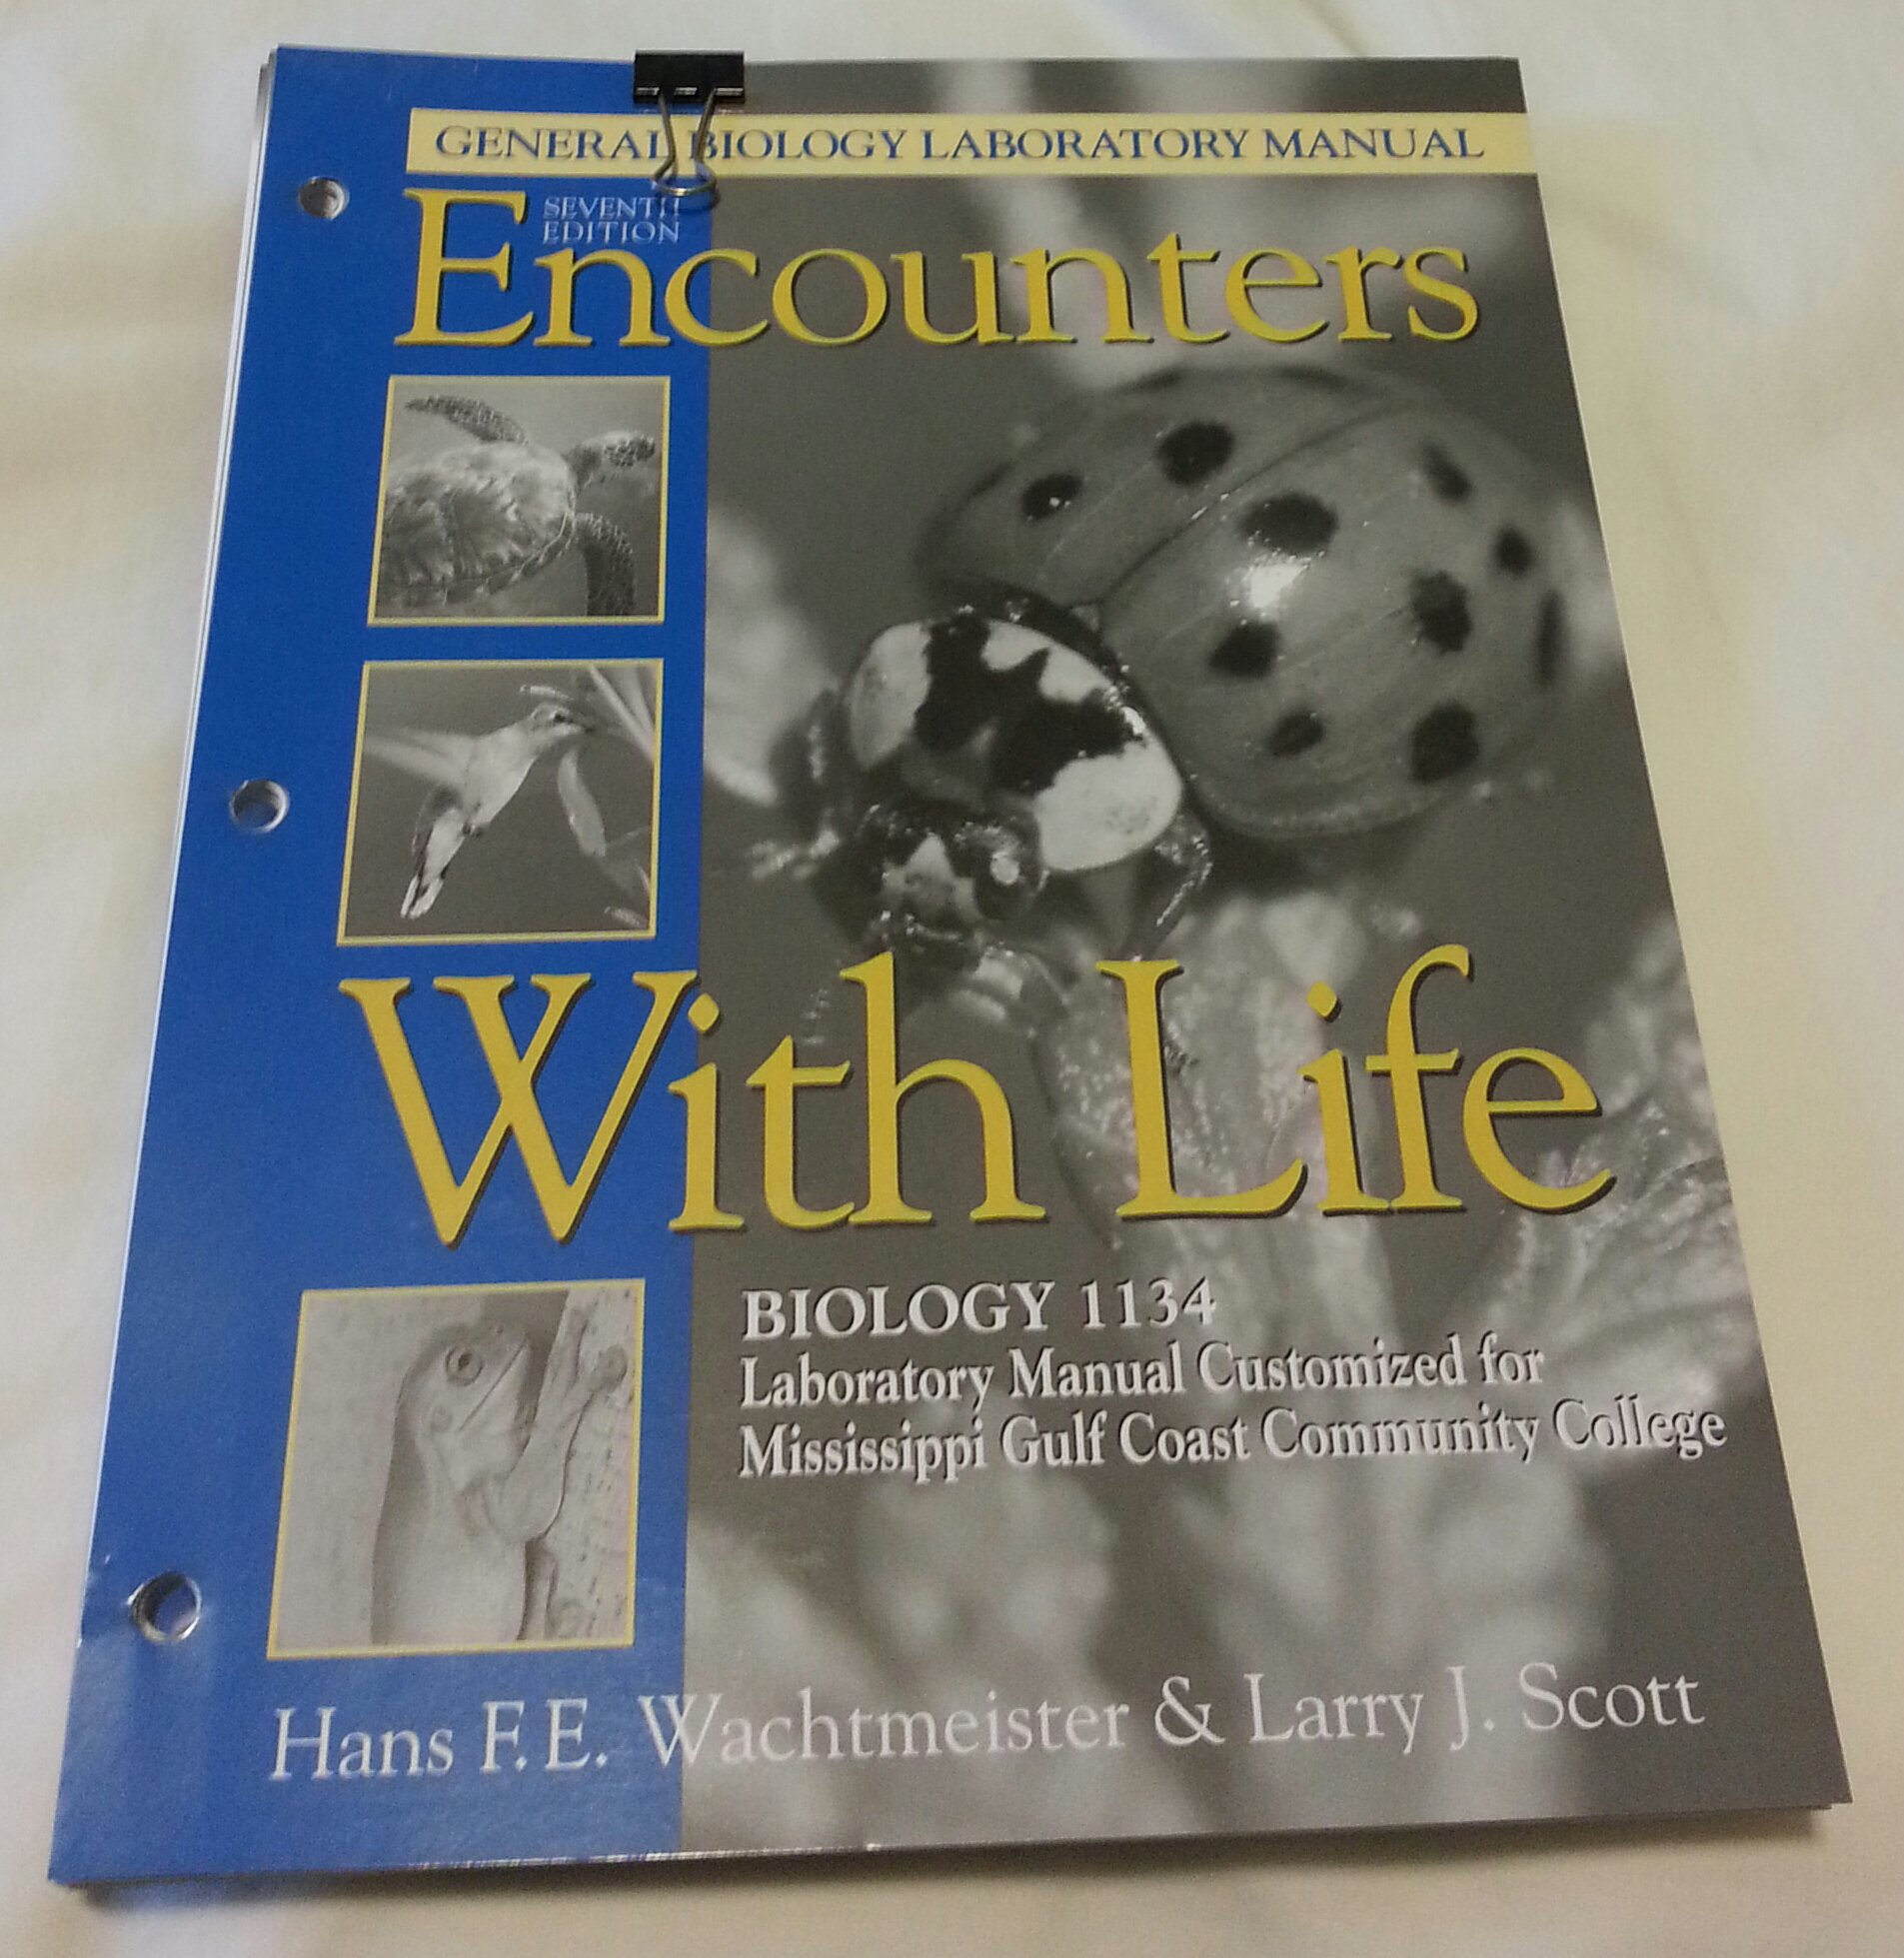 Encounters with Life: General Biology Laboratory Manual [Loose Leaf]  Customized (Biologoy 1134- Customized for Mississippi Gulf Coast Community  College): ...